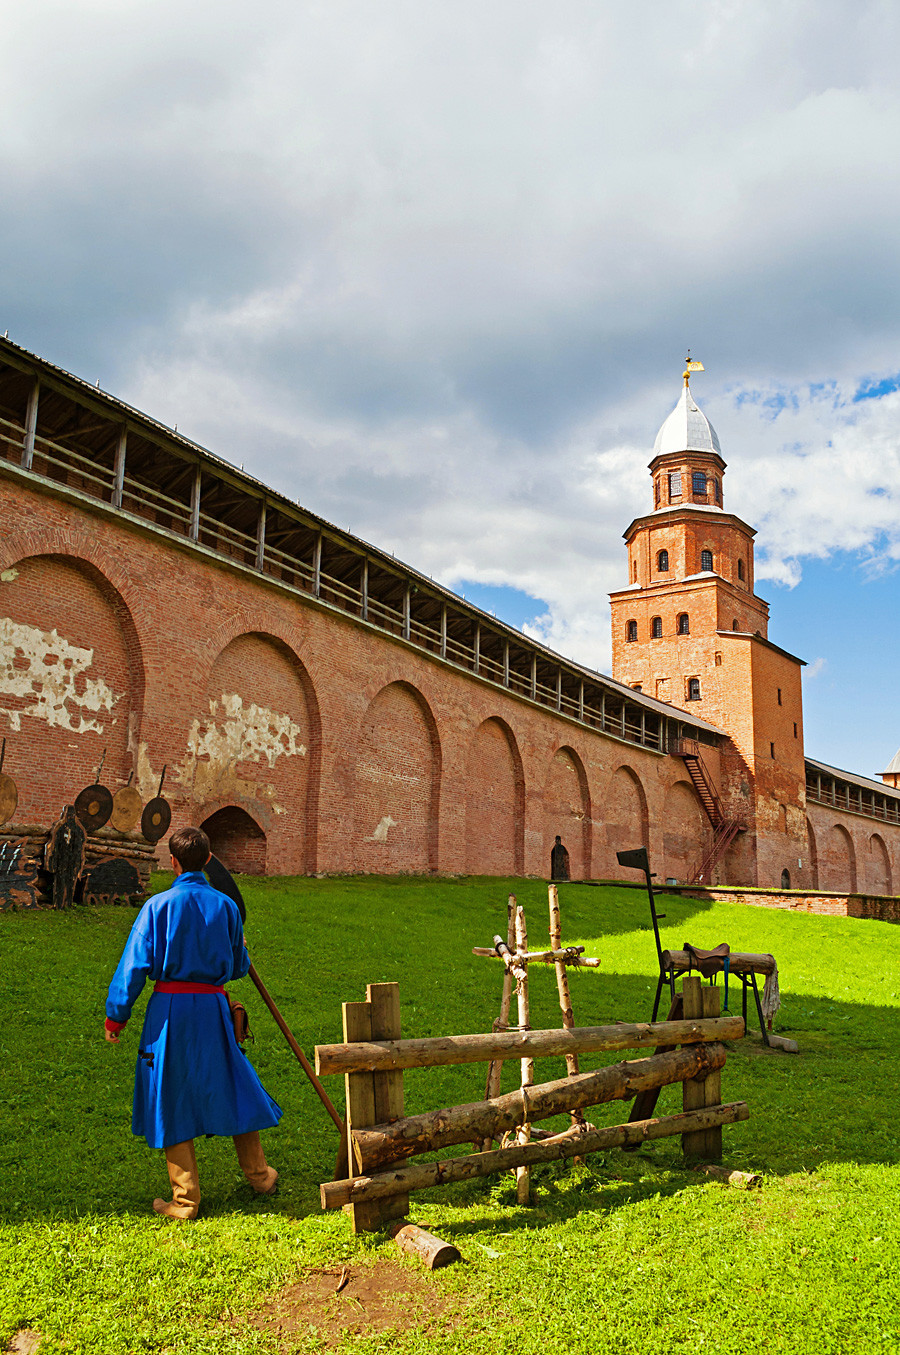 Kokui tower of Veliky Novgorod Kremlin and man dressed in medieval clothes in Veliky Novgorod, Russia.